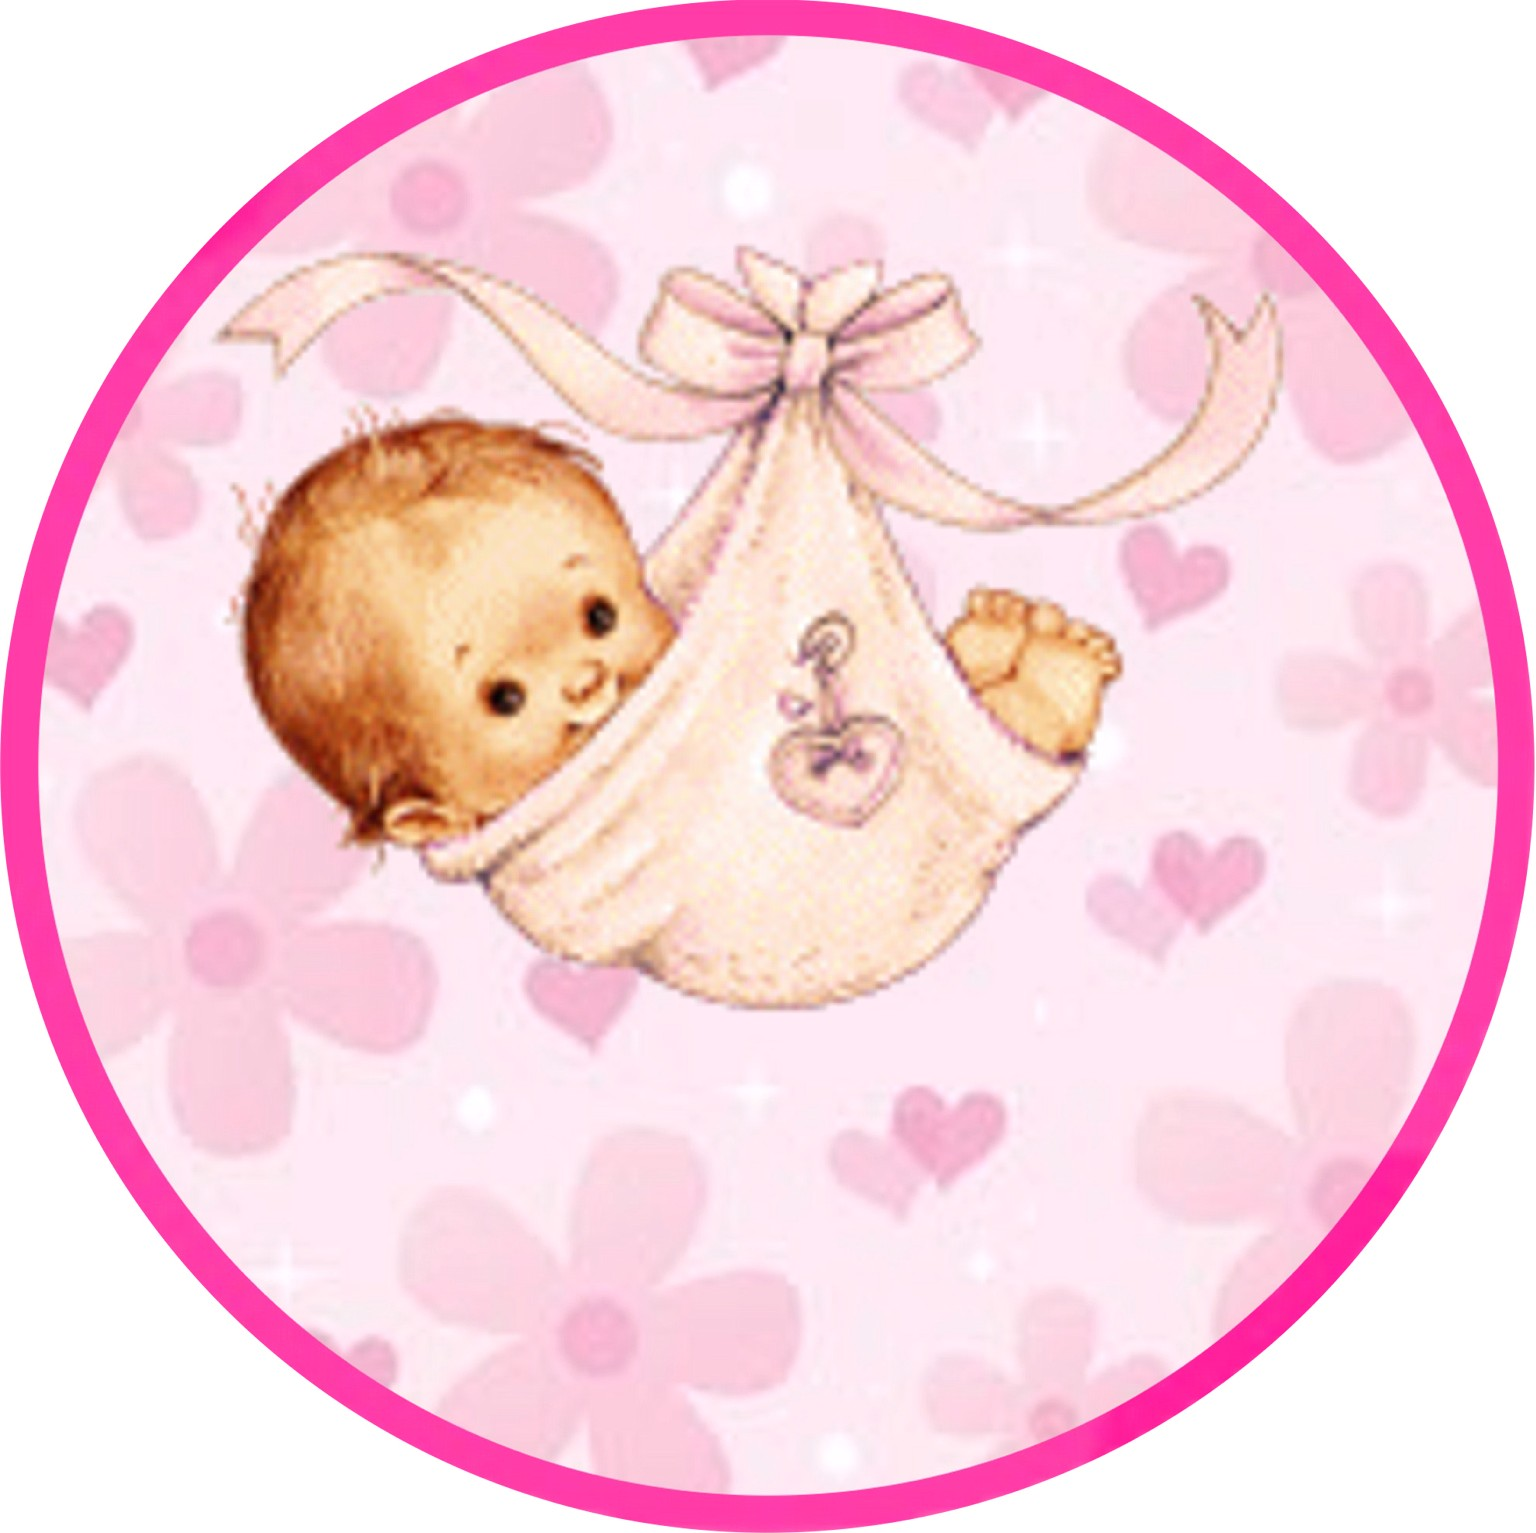 Imagenes para baby shower ni+-a clipart jpg free Top 5 Baby Shower Messages And Quotes | Playbuzz jpg free